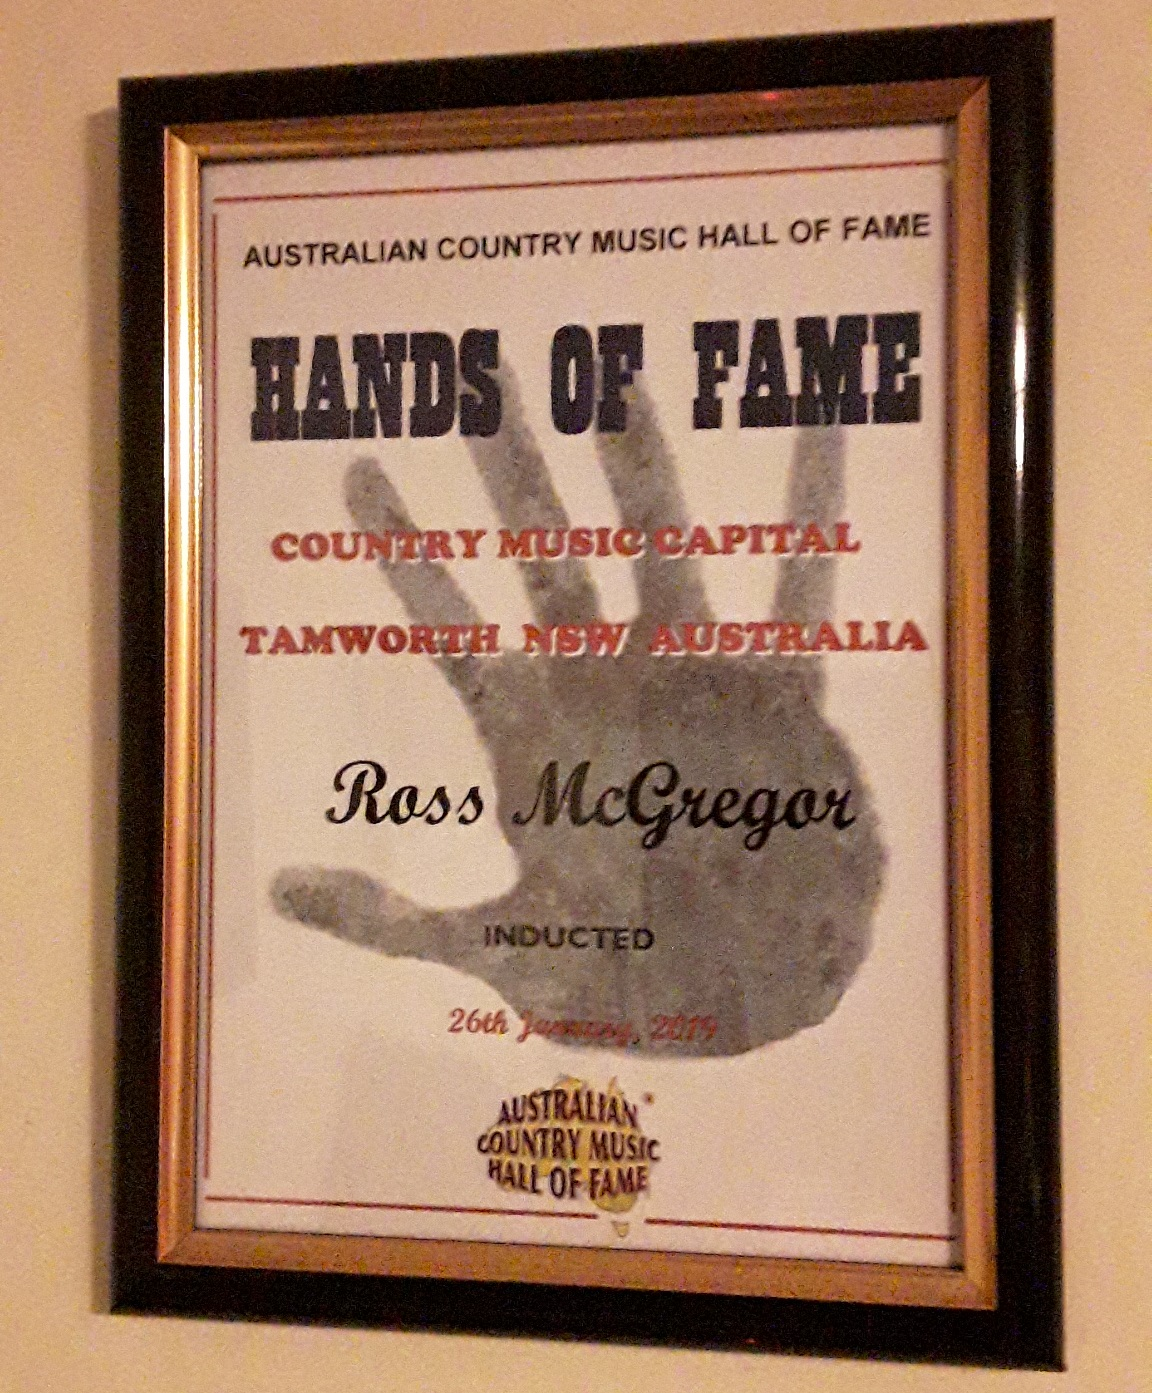 Ross has been inducted into the Hands of Fame